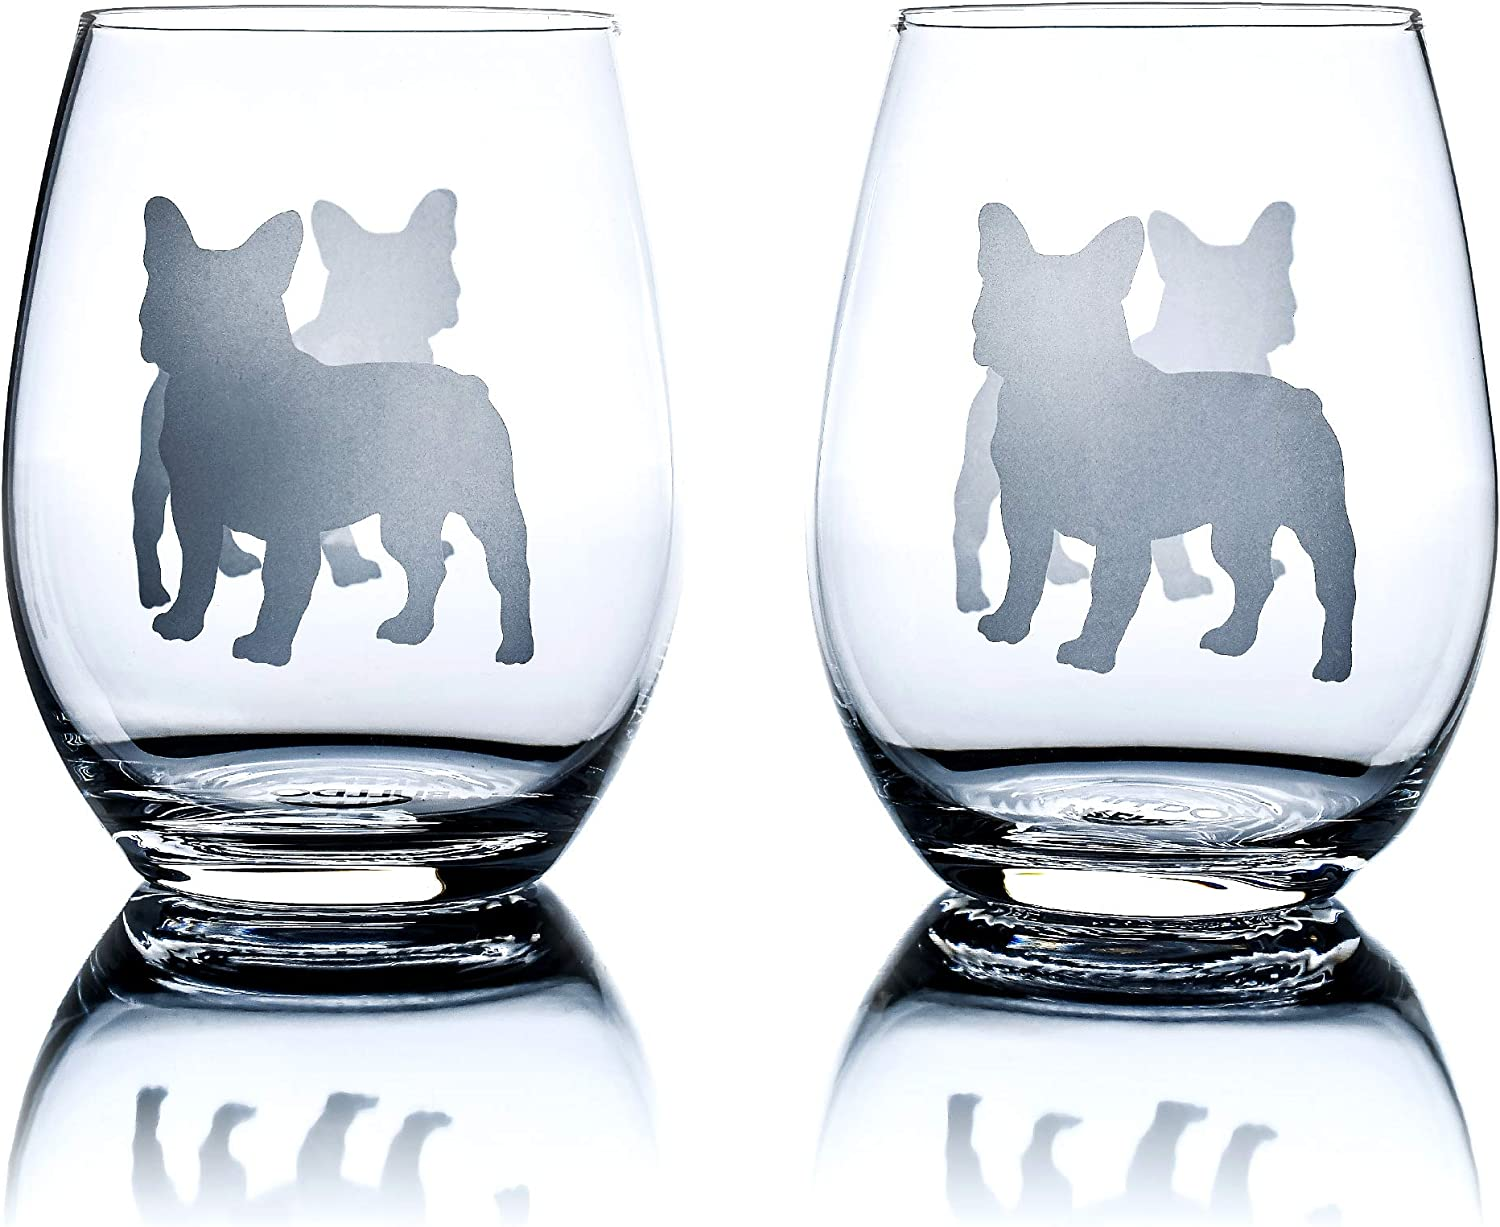 French Bulldog Wine Glasses Set of 2 Max 68% OFF for Today's only Unique Lovers Dog